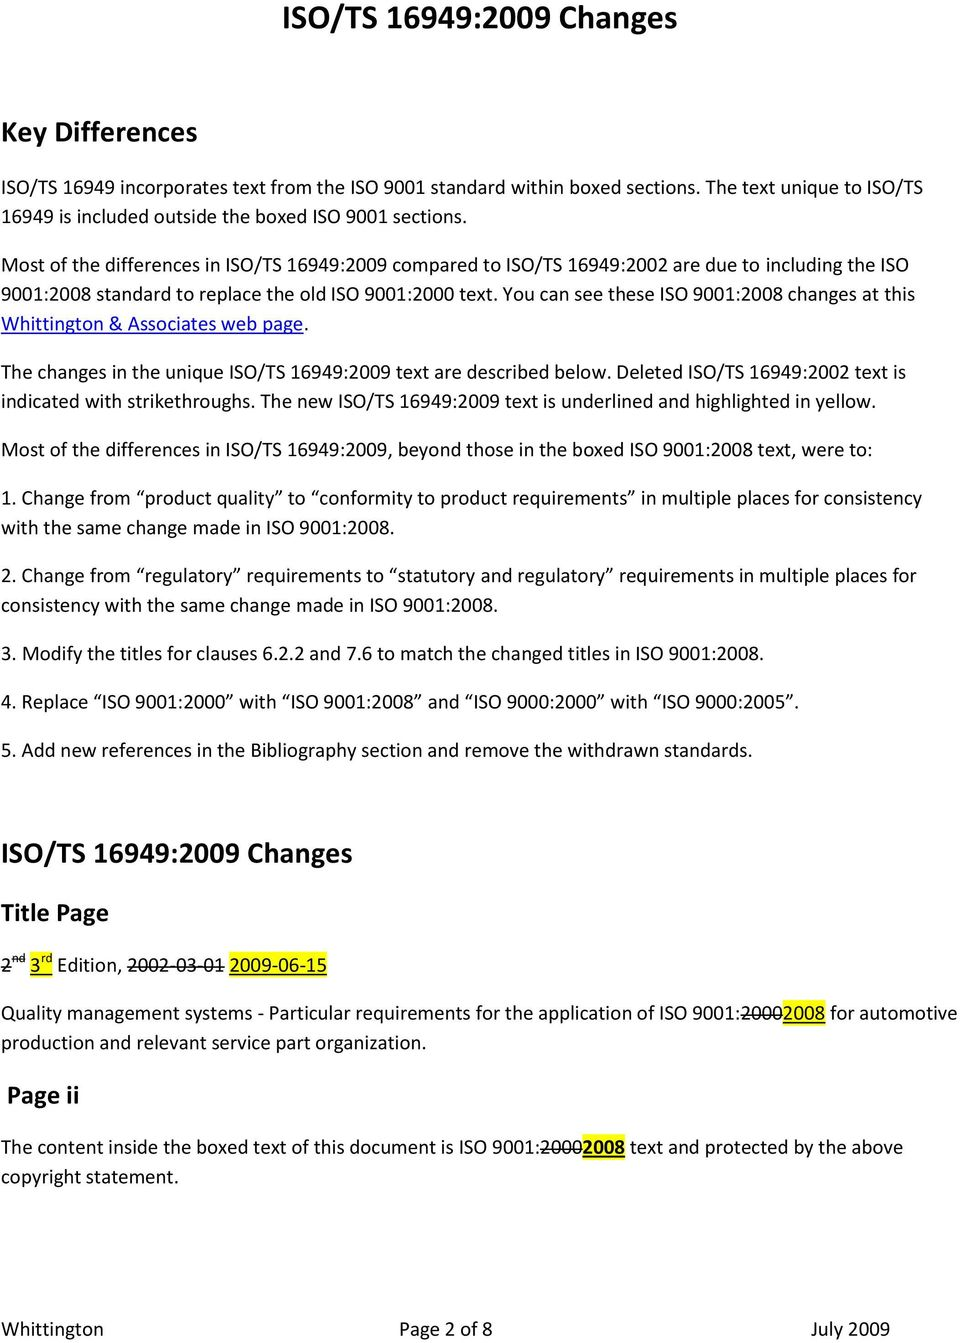 You can see these ISO 9001:2008 changes at this Whittington & Associates web page. The changes in the unique ISO/TS 16949:2009 text are described below.